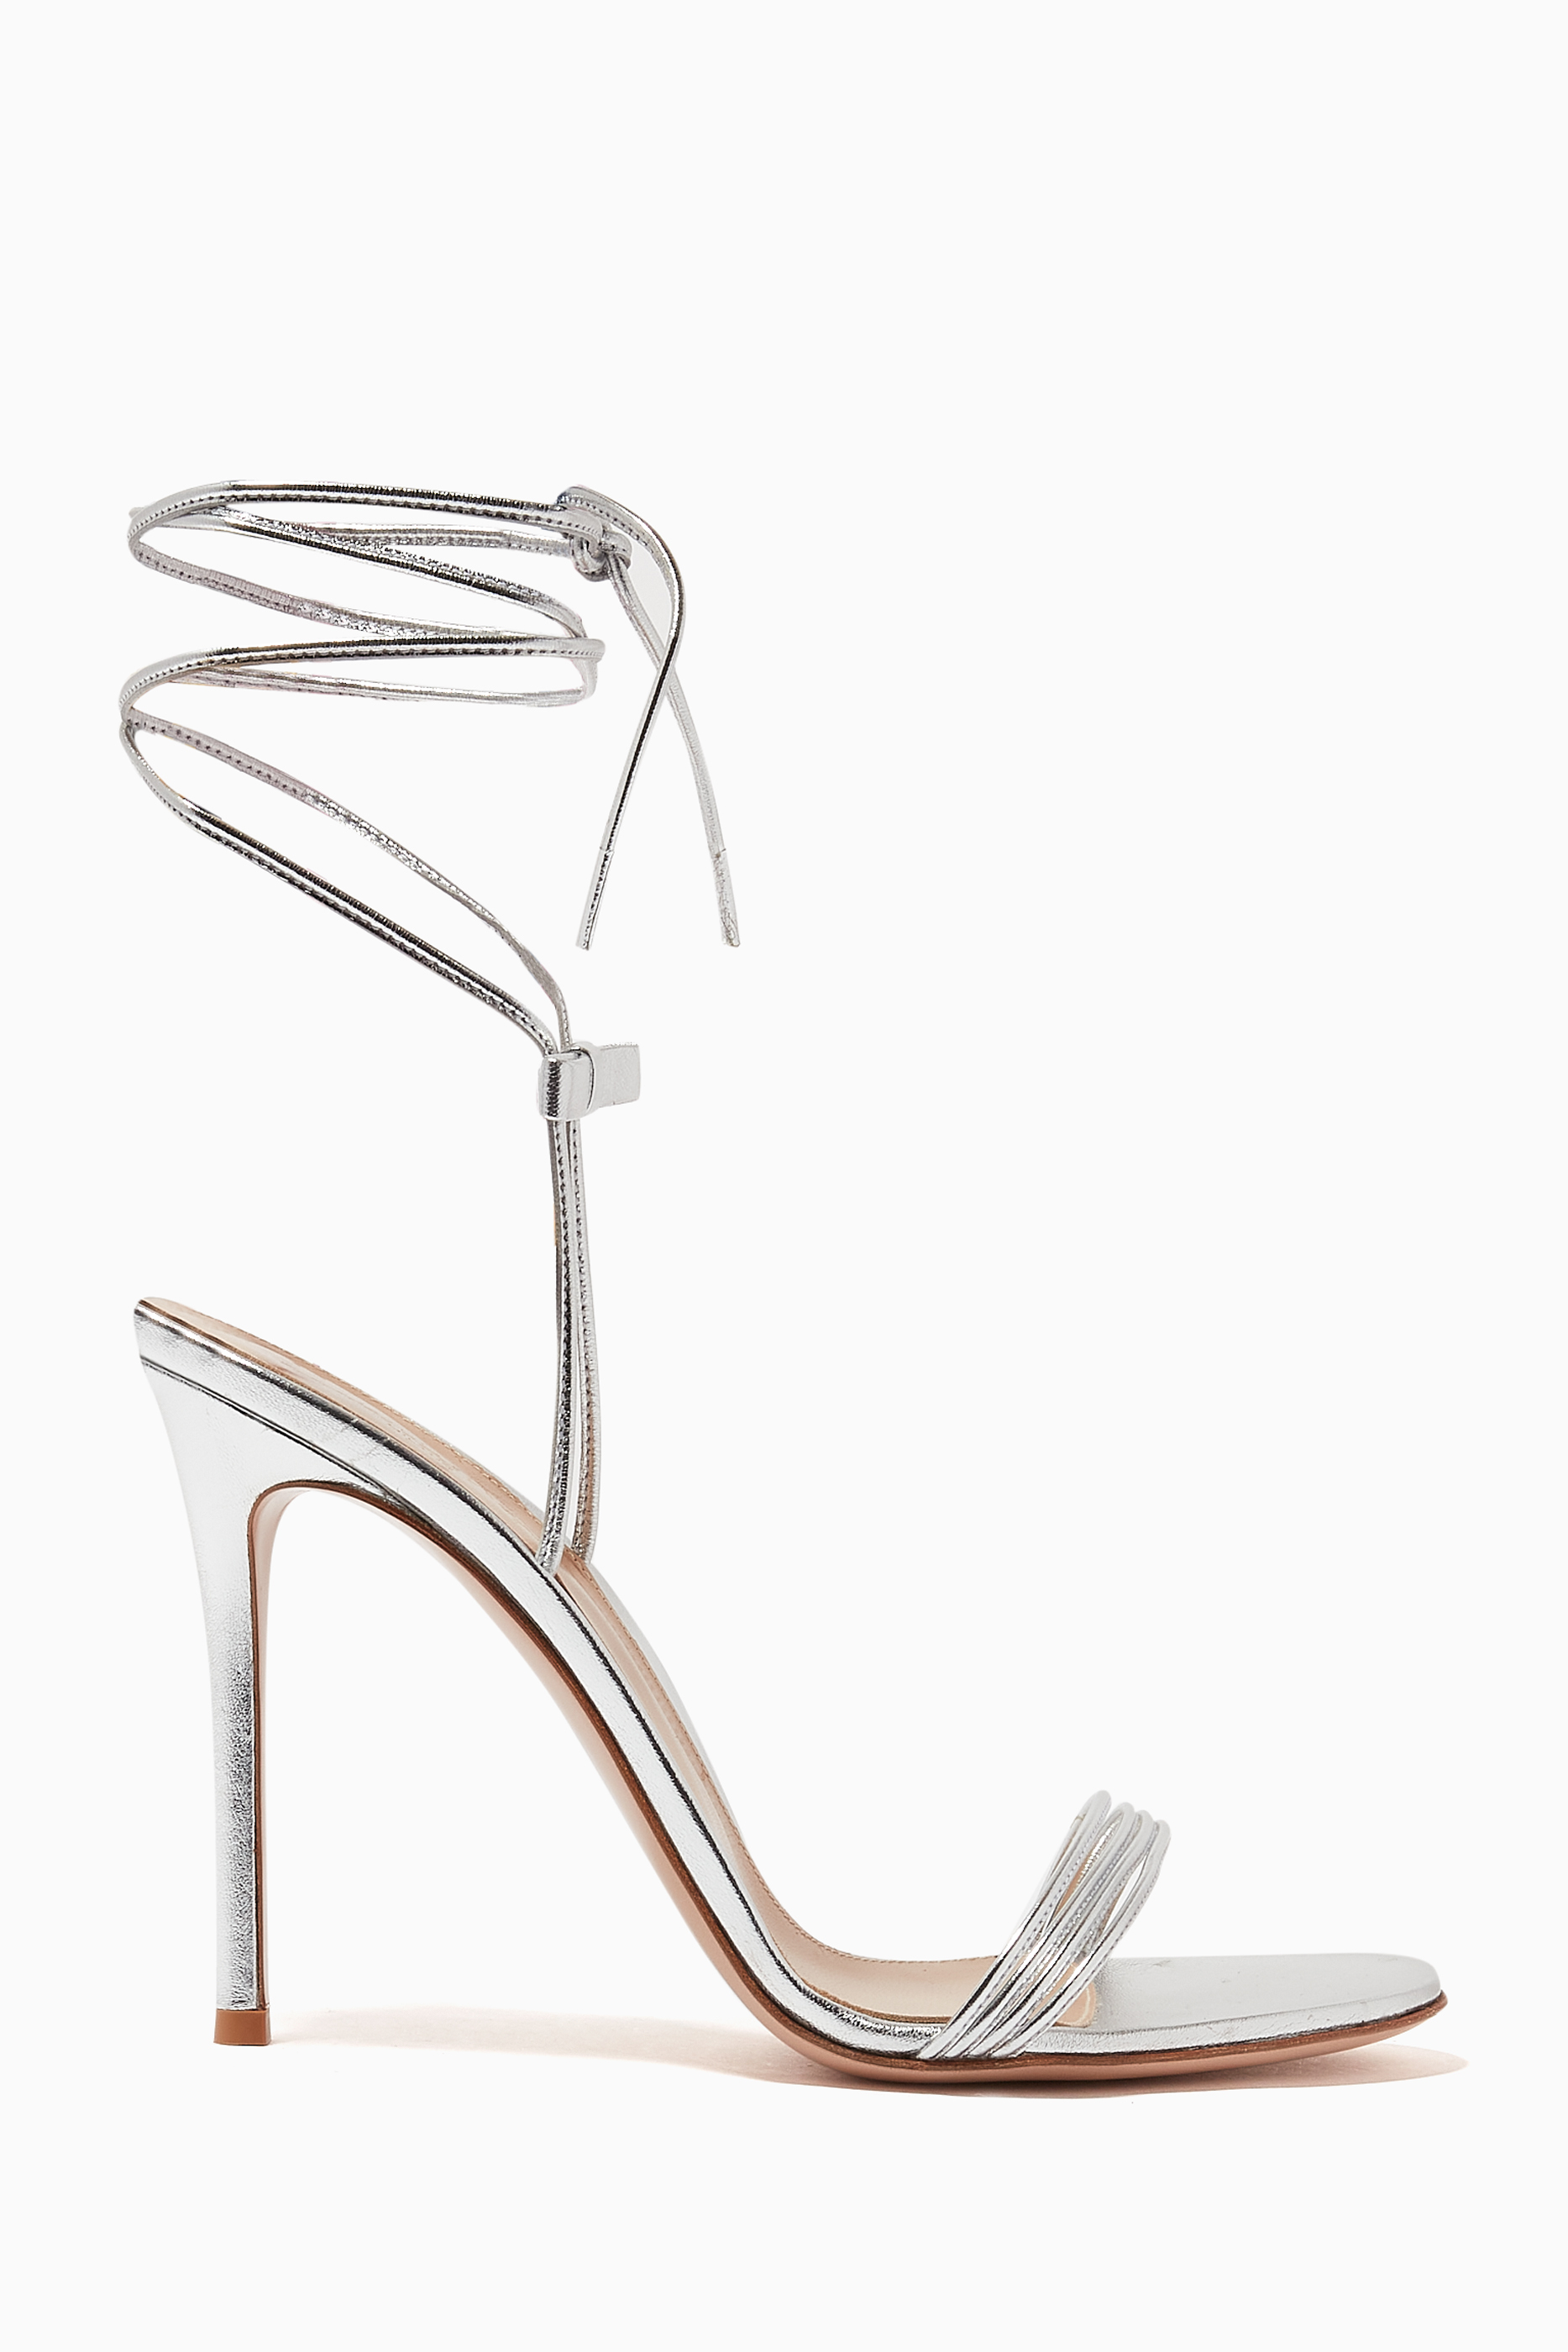 Shop Gianvito Rossi Silver Ankle Tie-Up